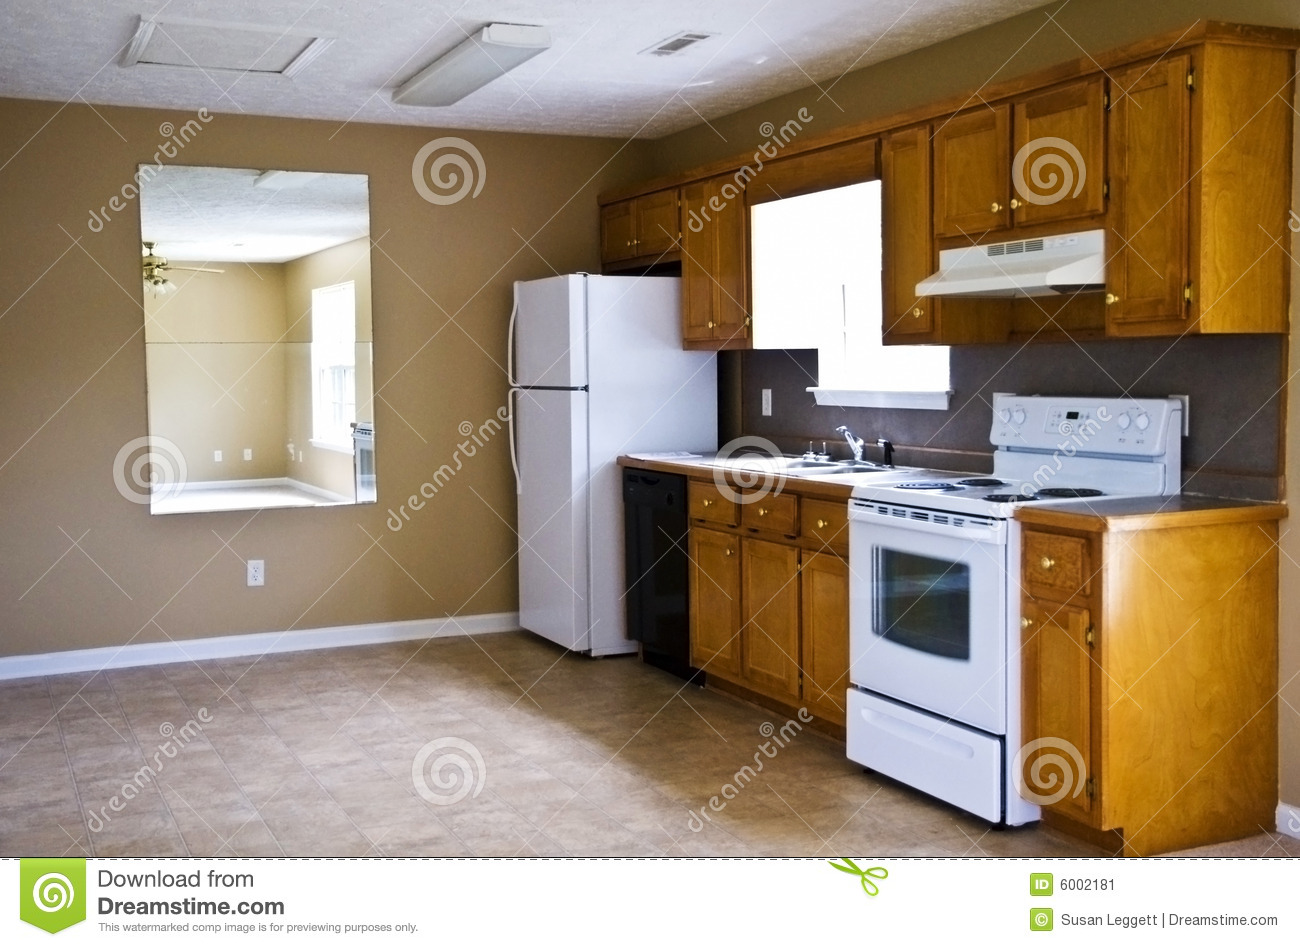 Small House Kitchen Compact Kitchen Small House Stock Image Image 6002181